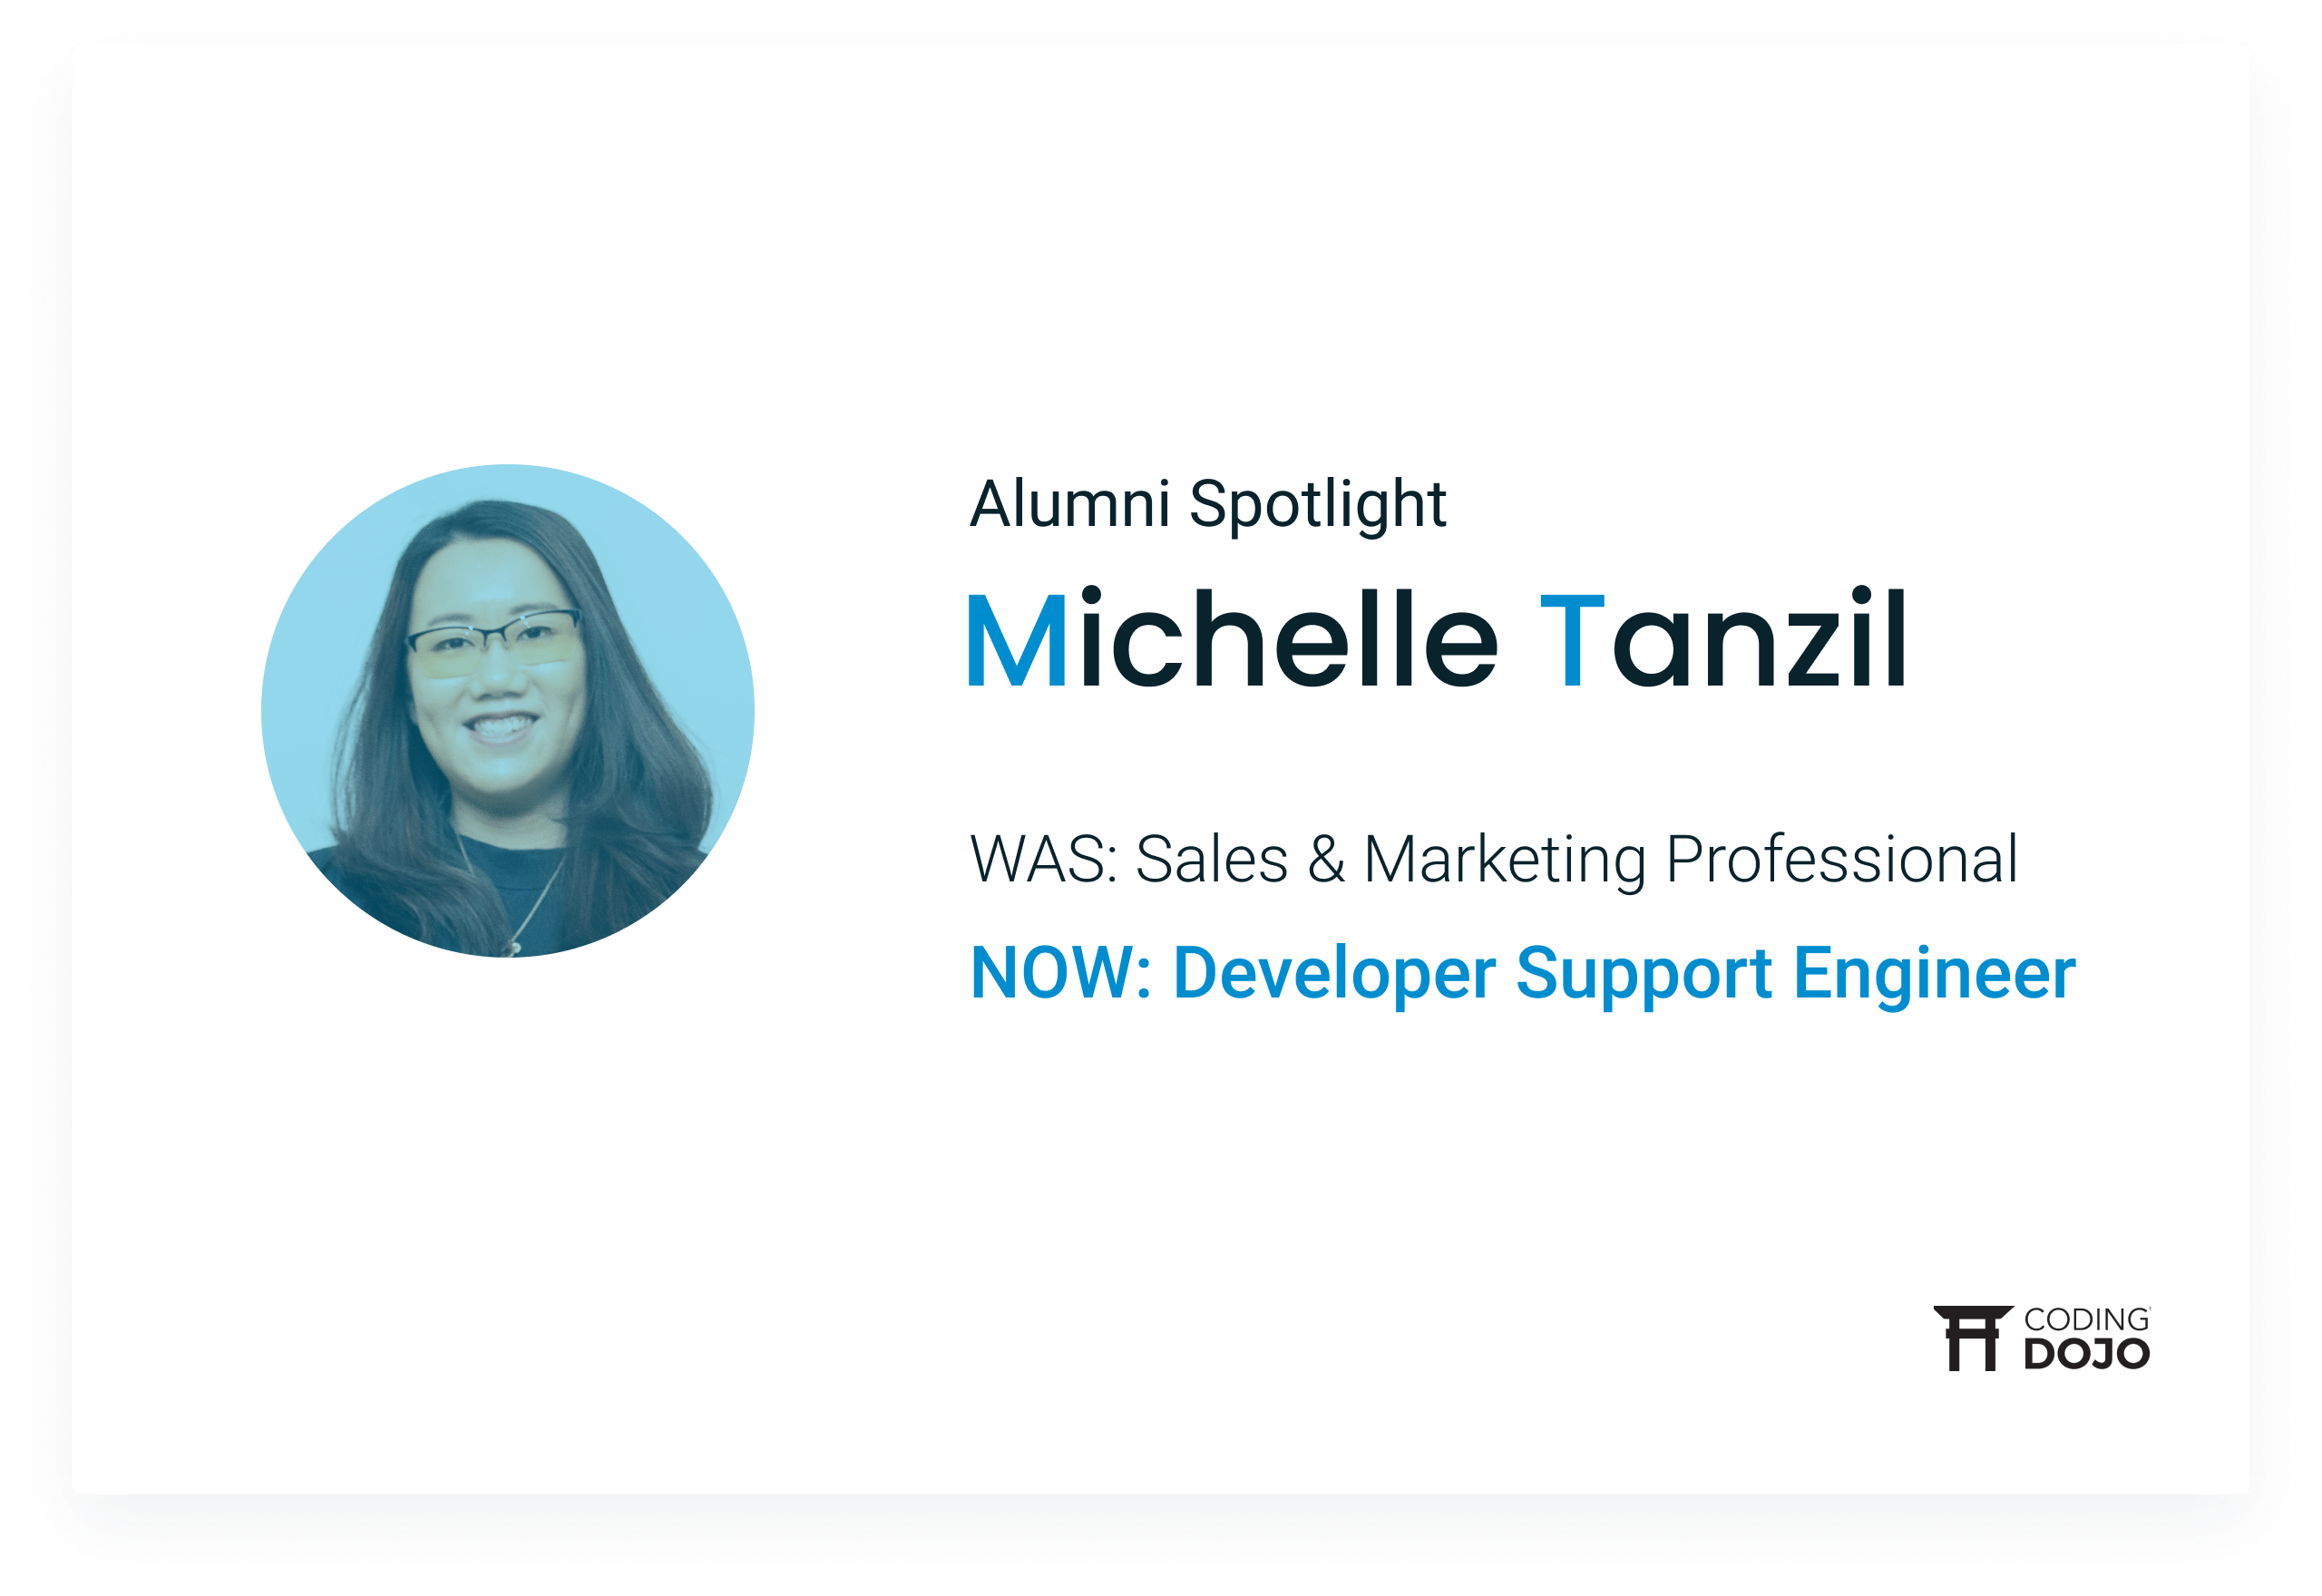 Coding Dojo Alumni Success | Michelle Tanzil